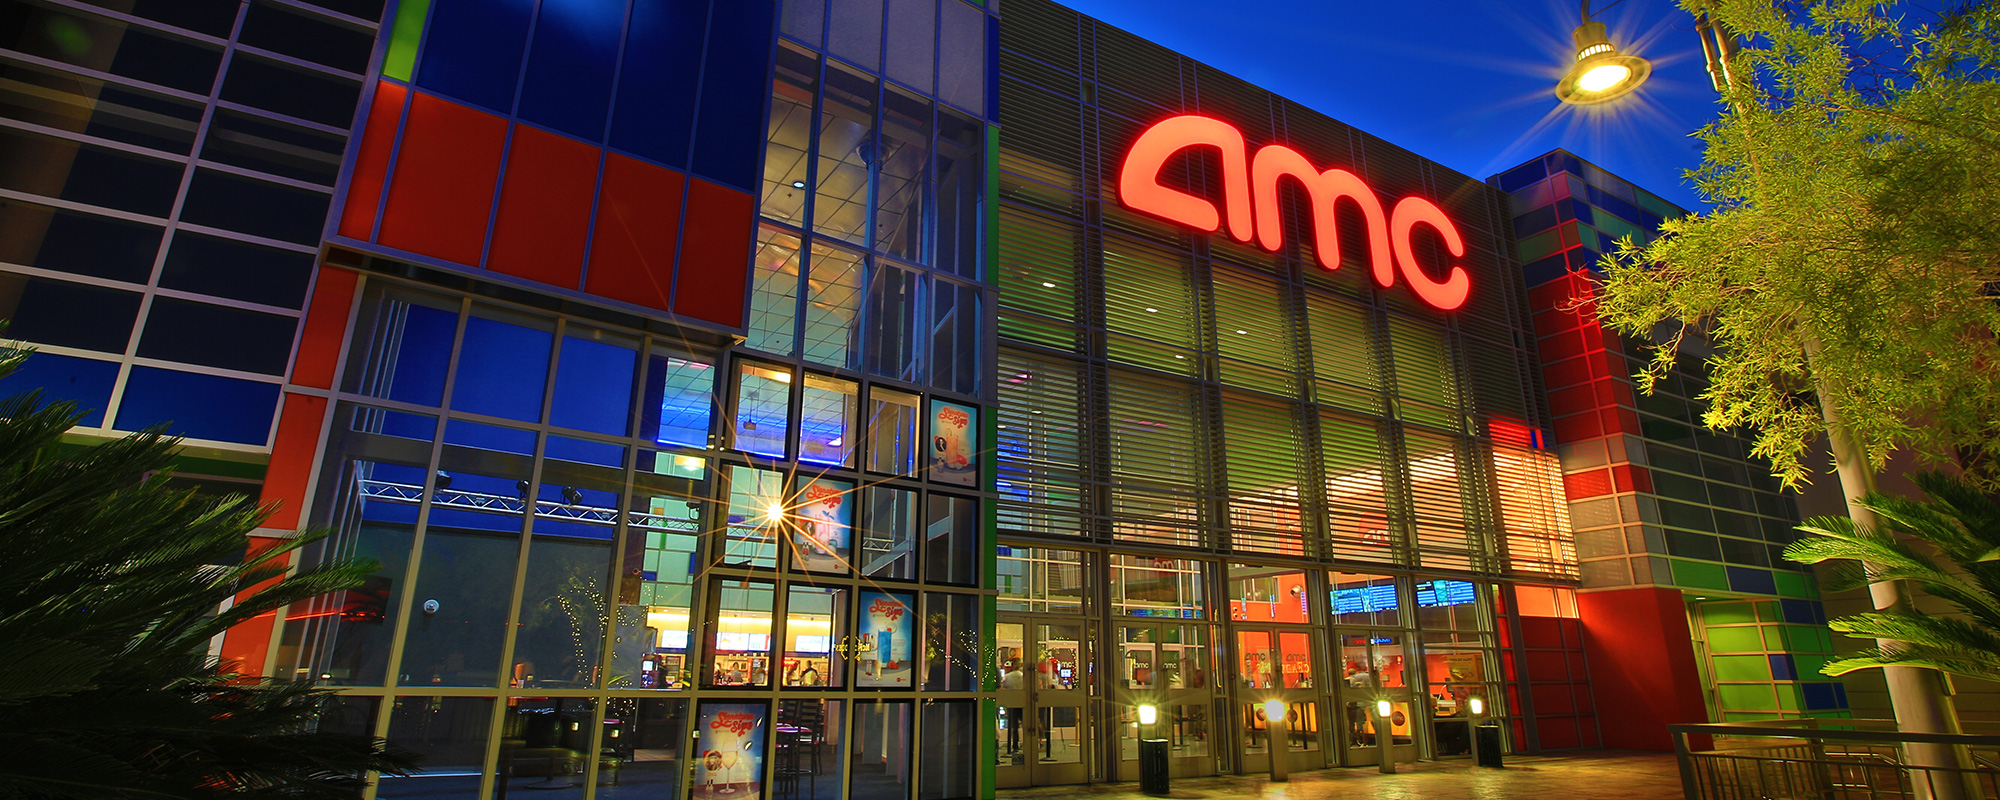 Amc Town Square 18 Las Vegas Nevada 89119 Amc Theatres